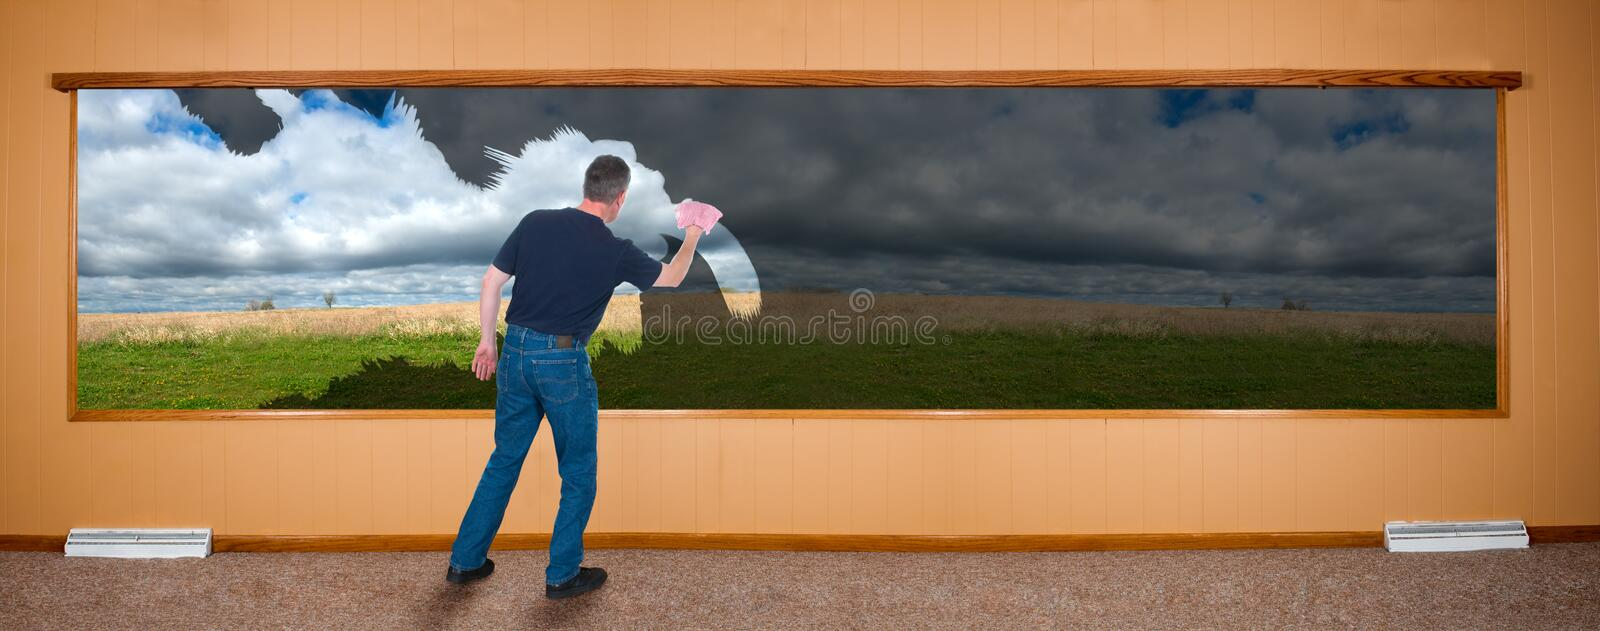 Spring Cleaning Banner, Man Washing Windows stock image